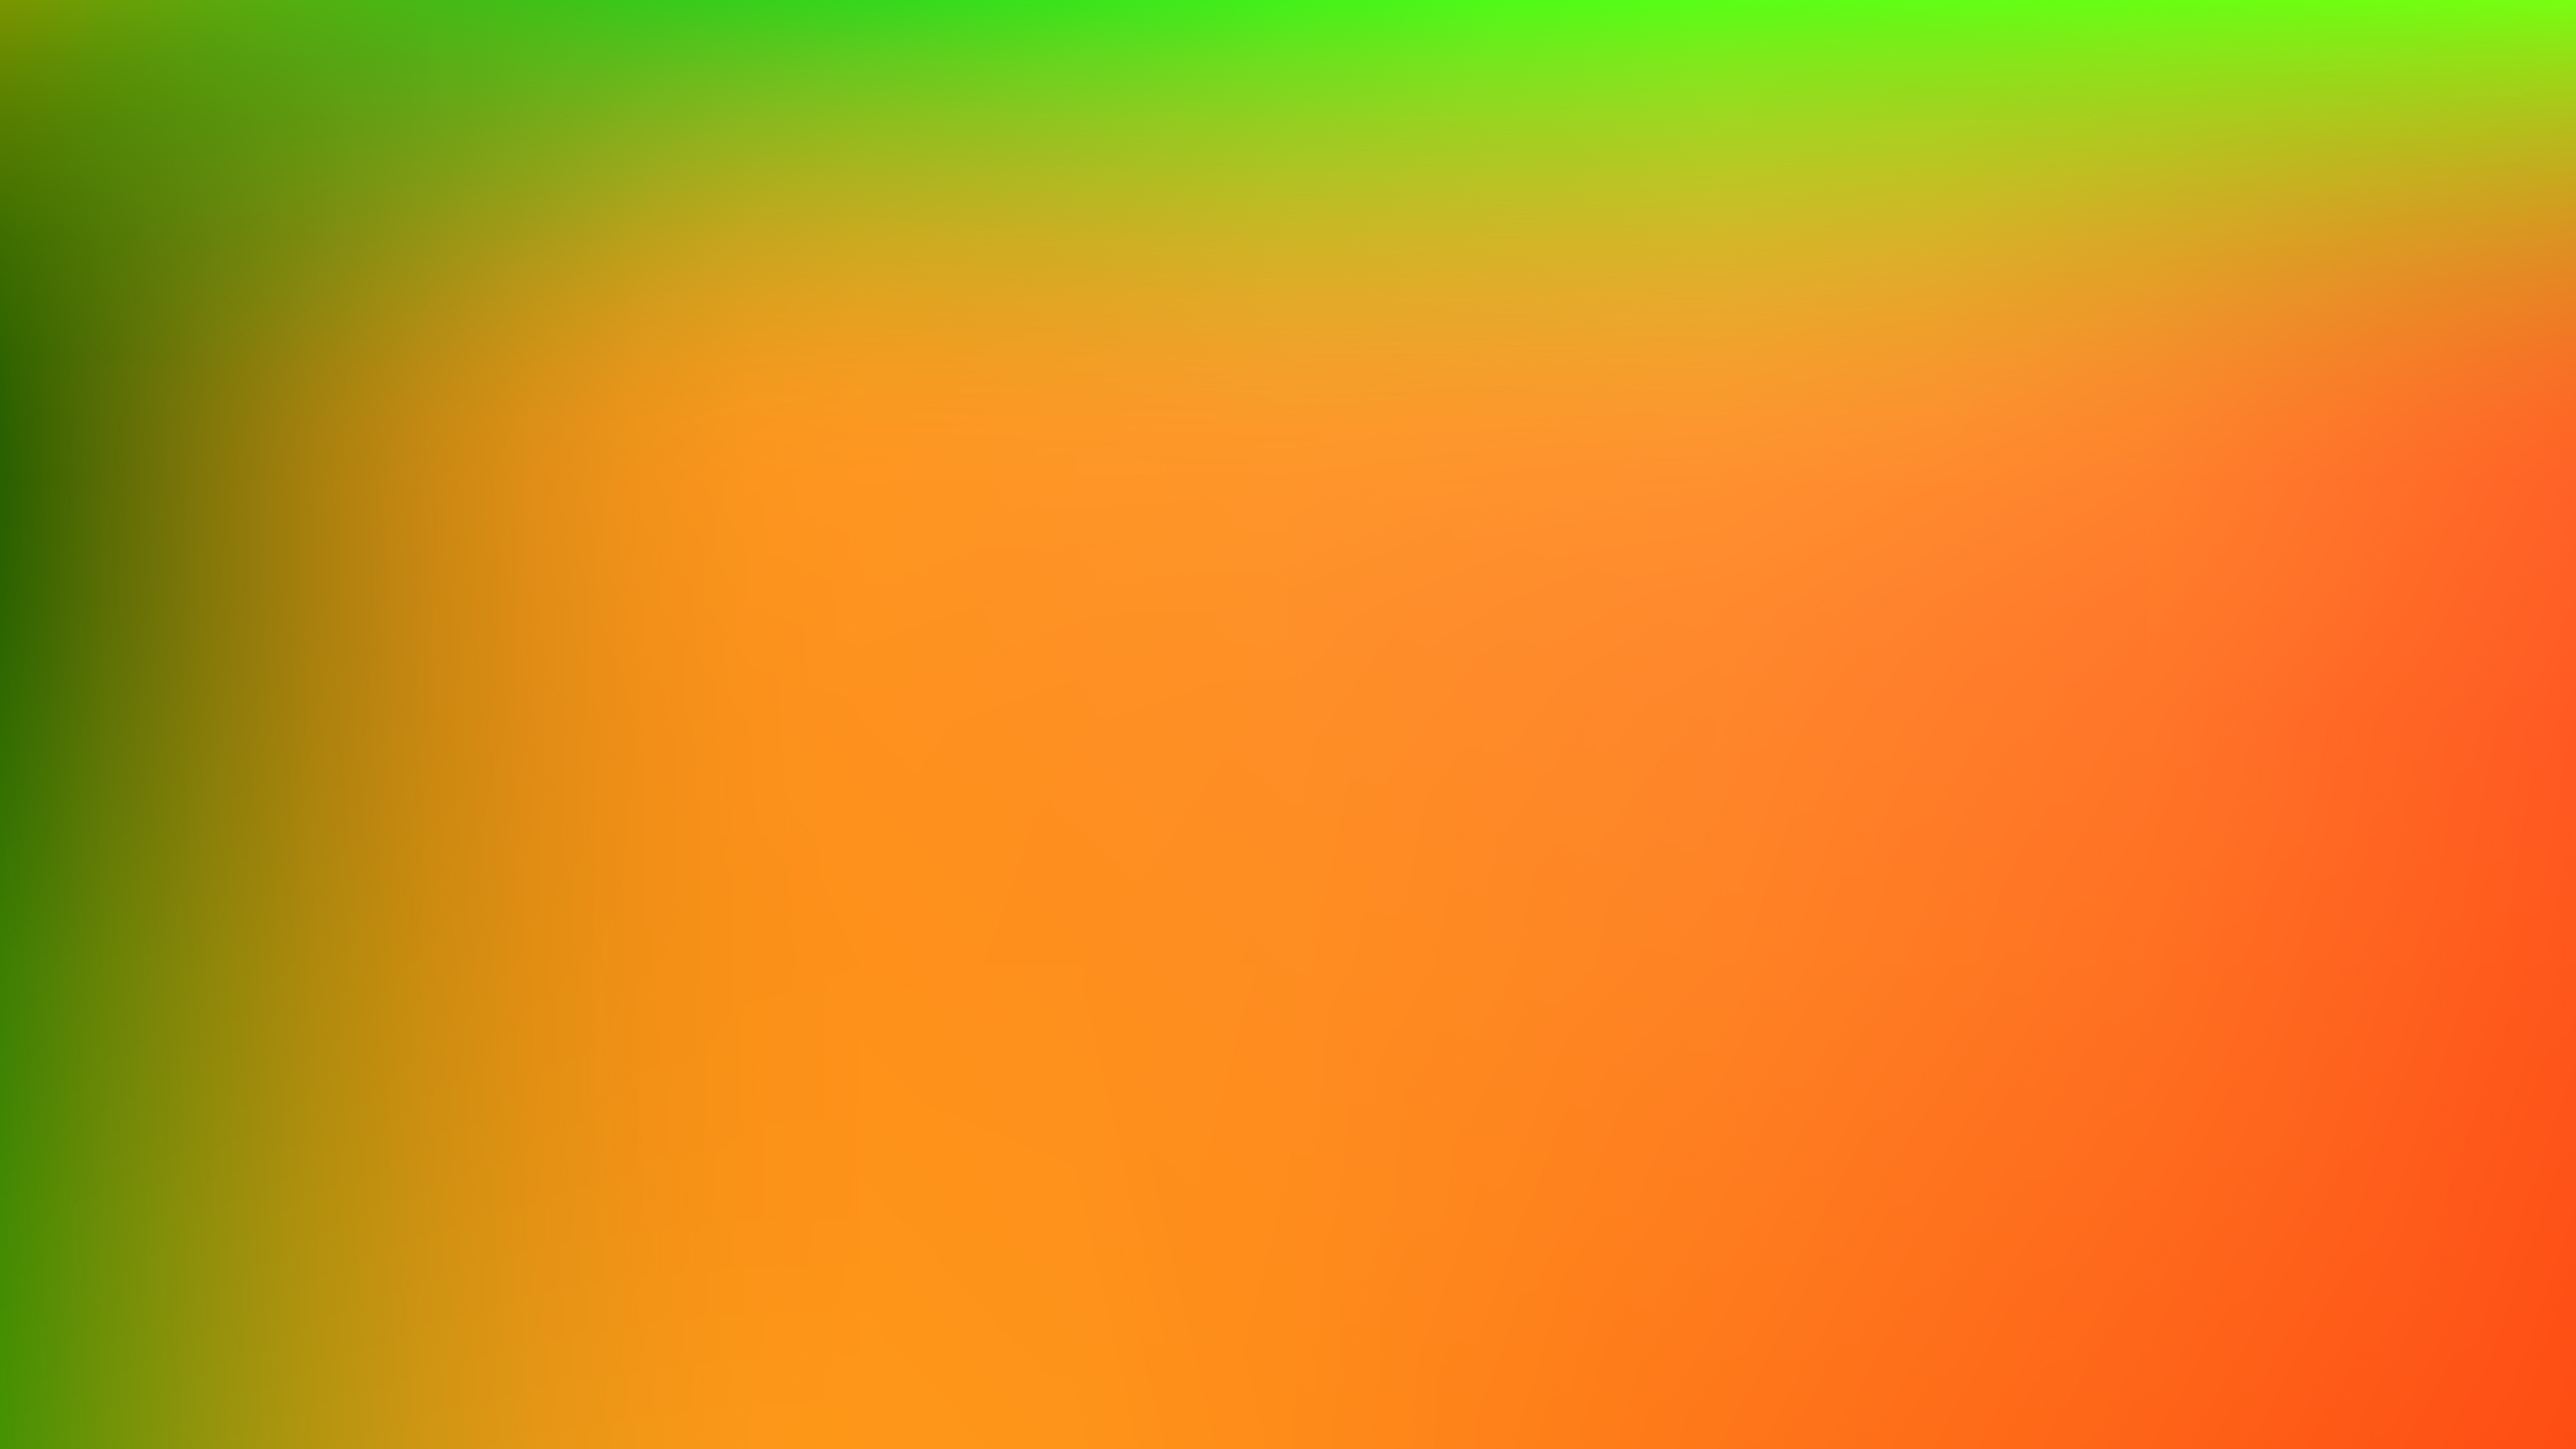 Unduh 107+ Background Green Orange Hd HD Terbaru